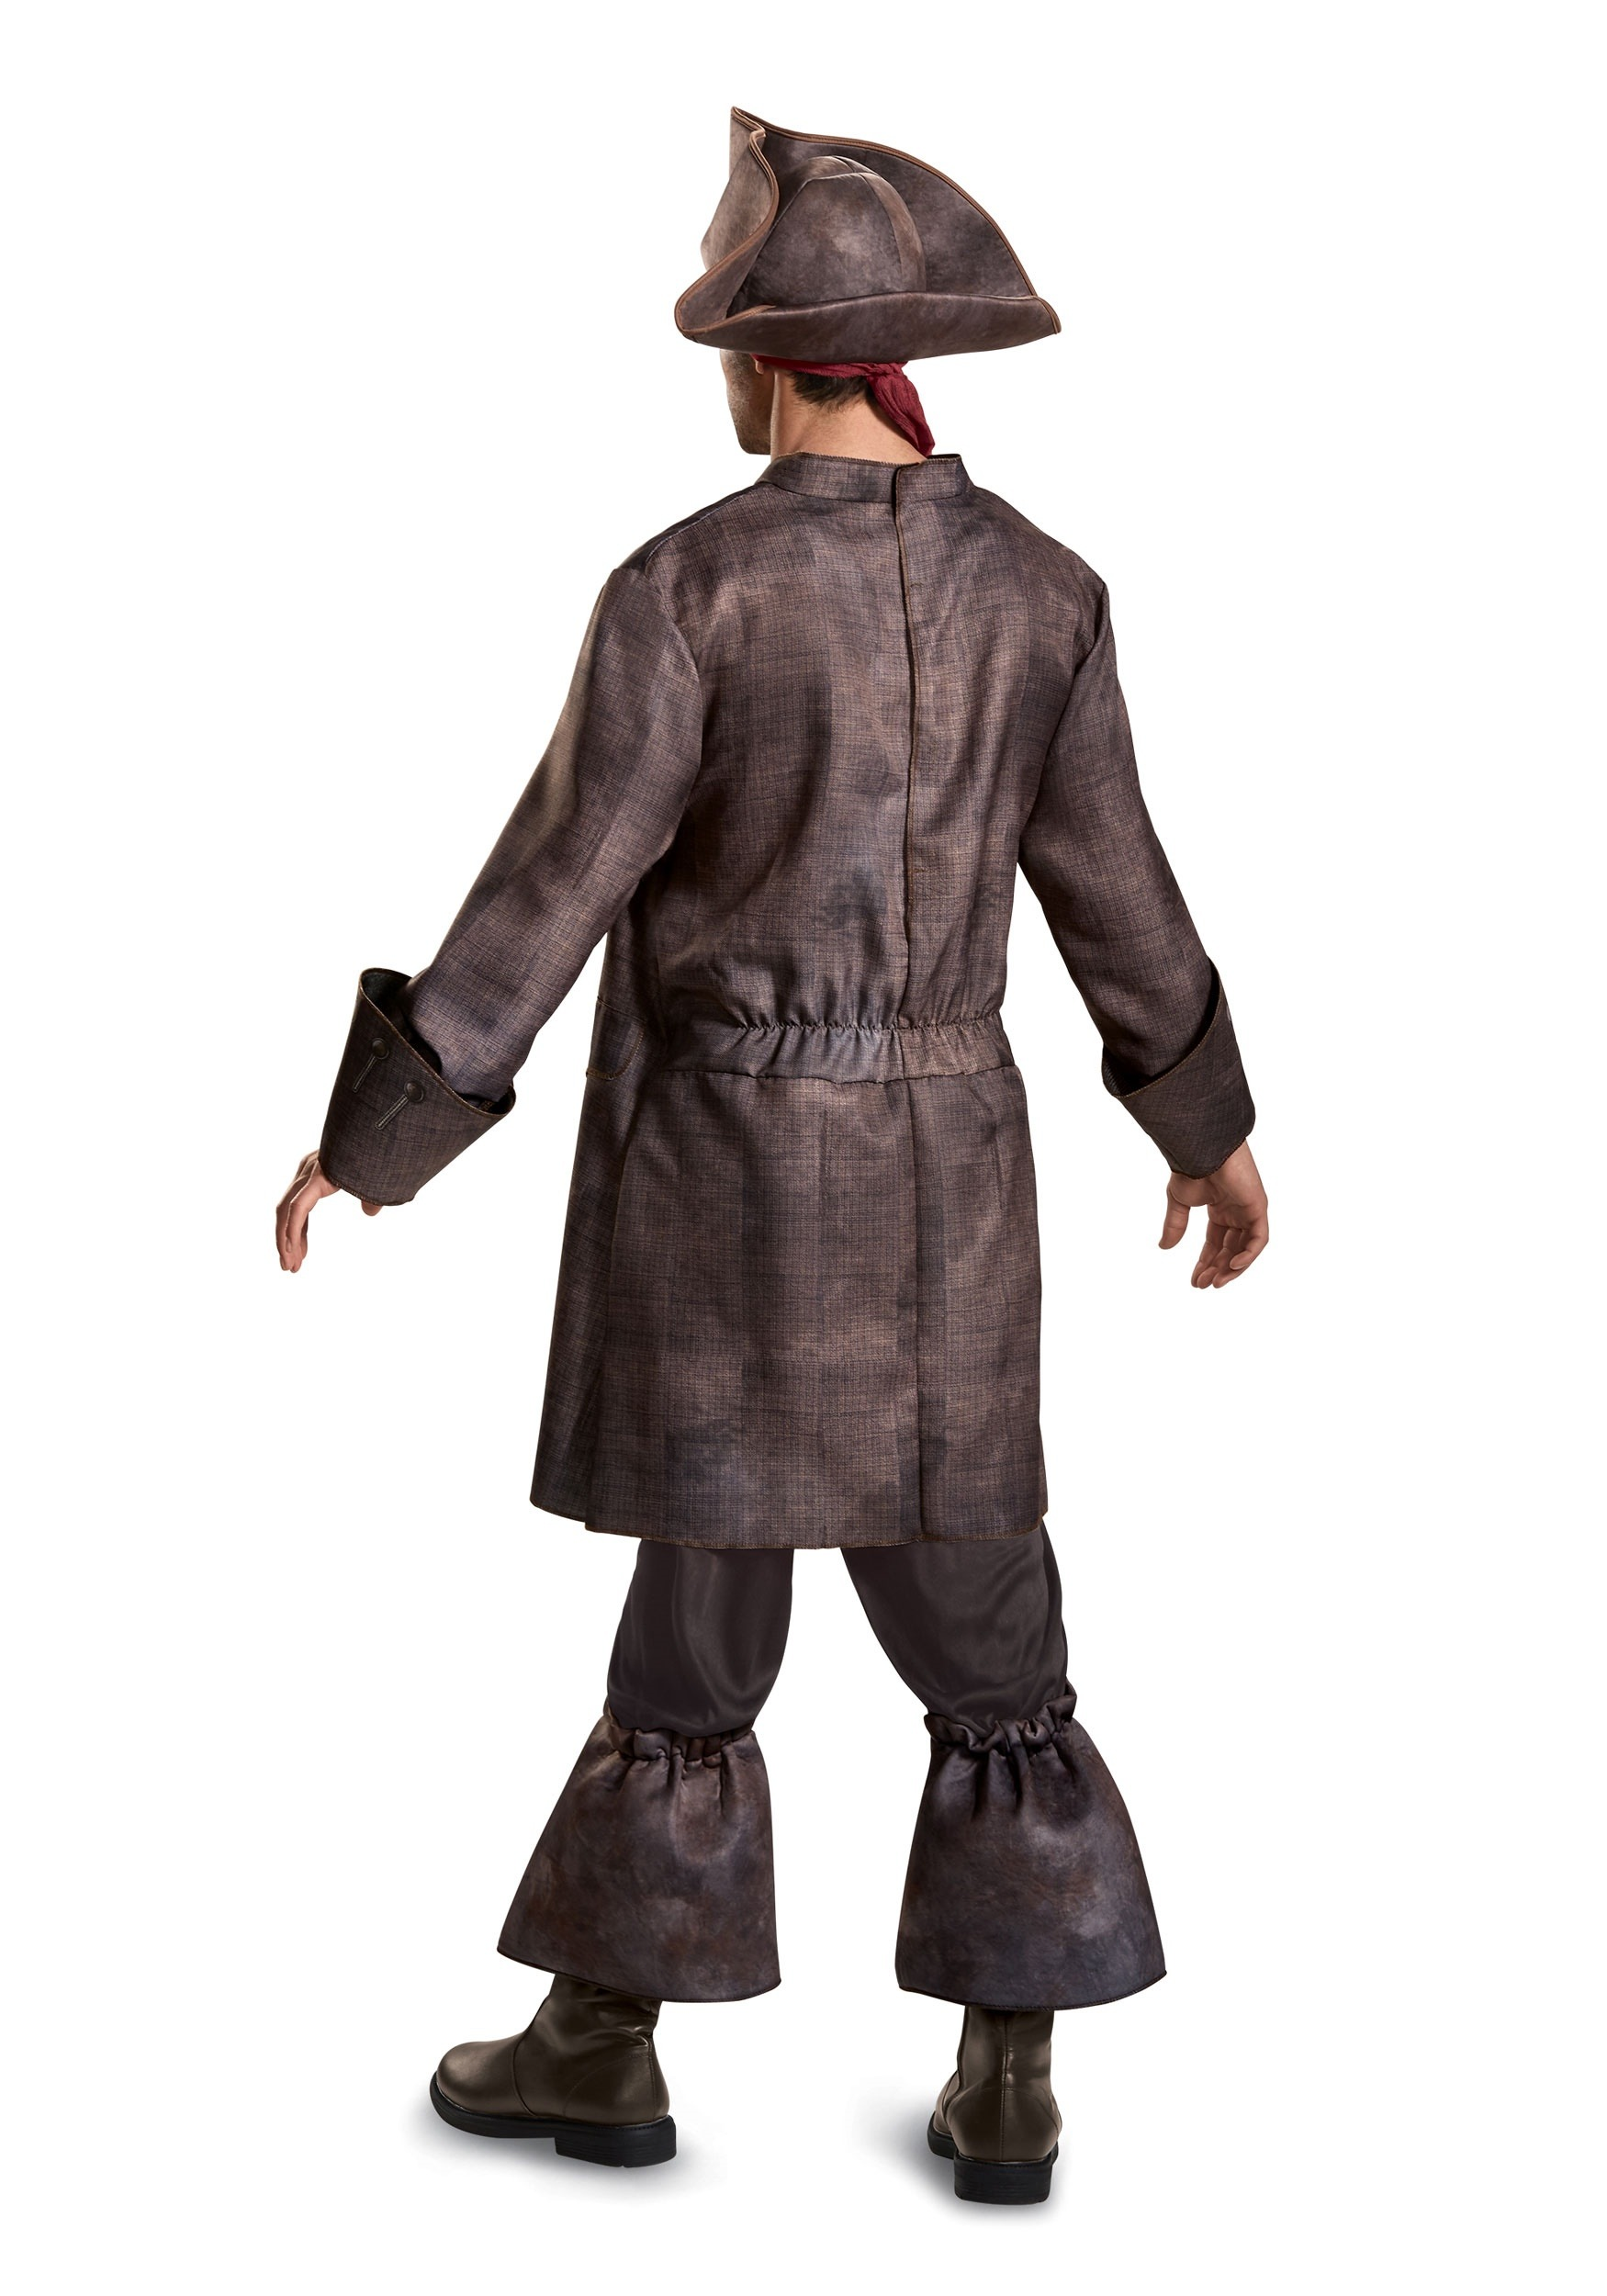 captain jack sparrow deluxe mens costume captain jack sparrow deluxe mens costume - Jack Sparrow Halloween Costumes